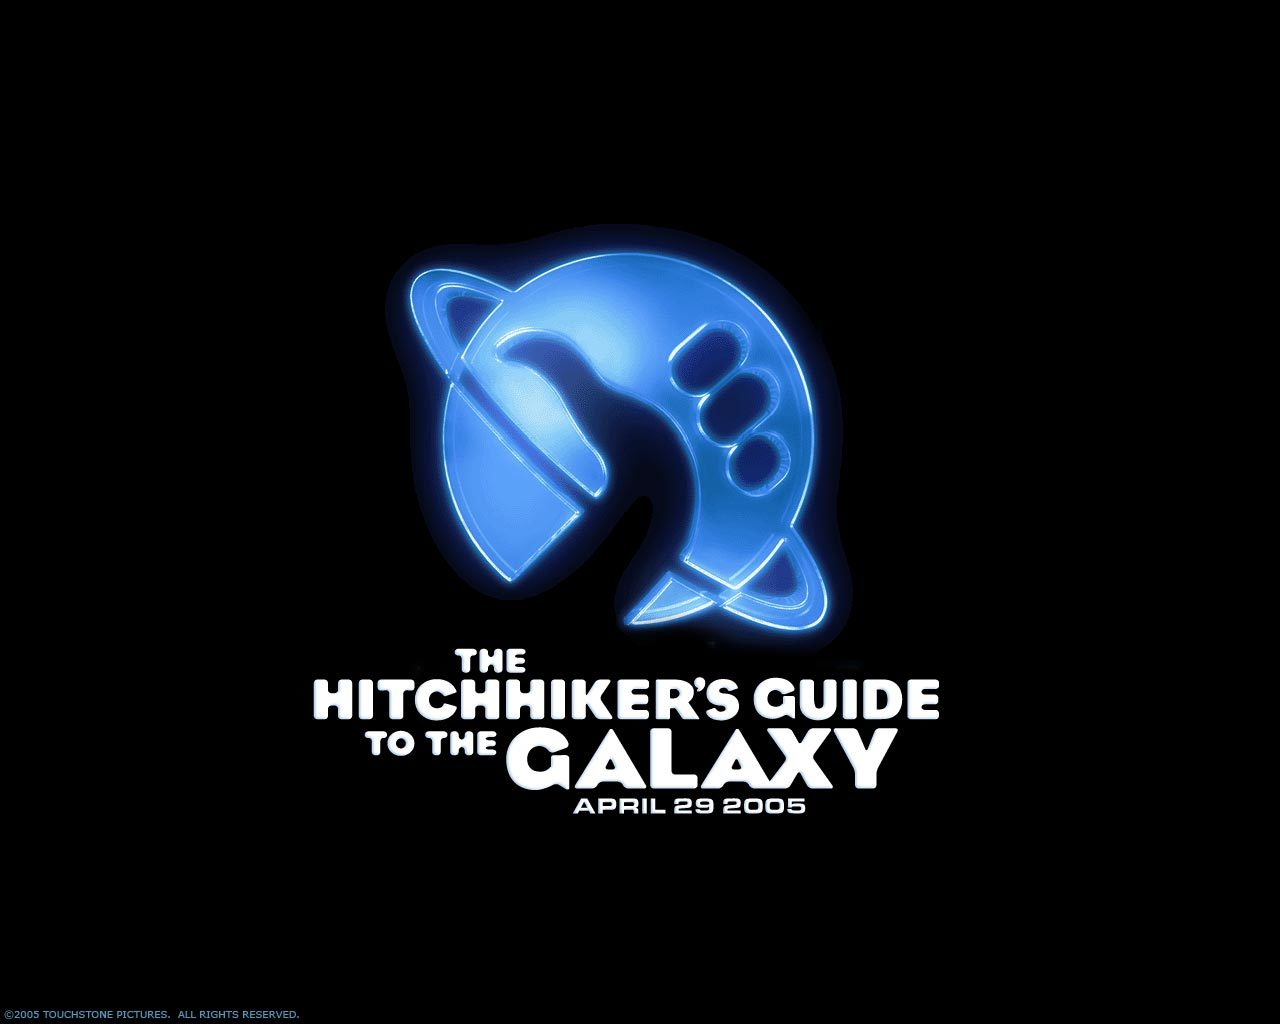 The Hitchhikers Guide To